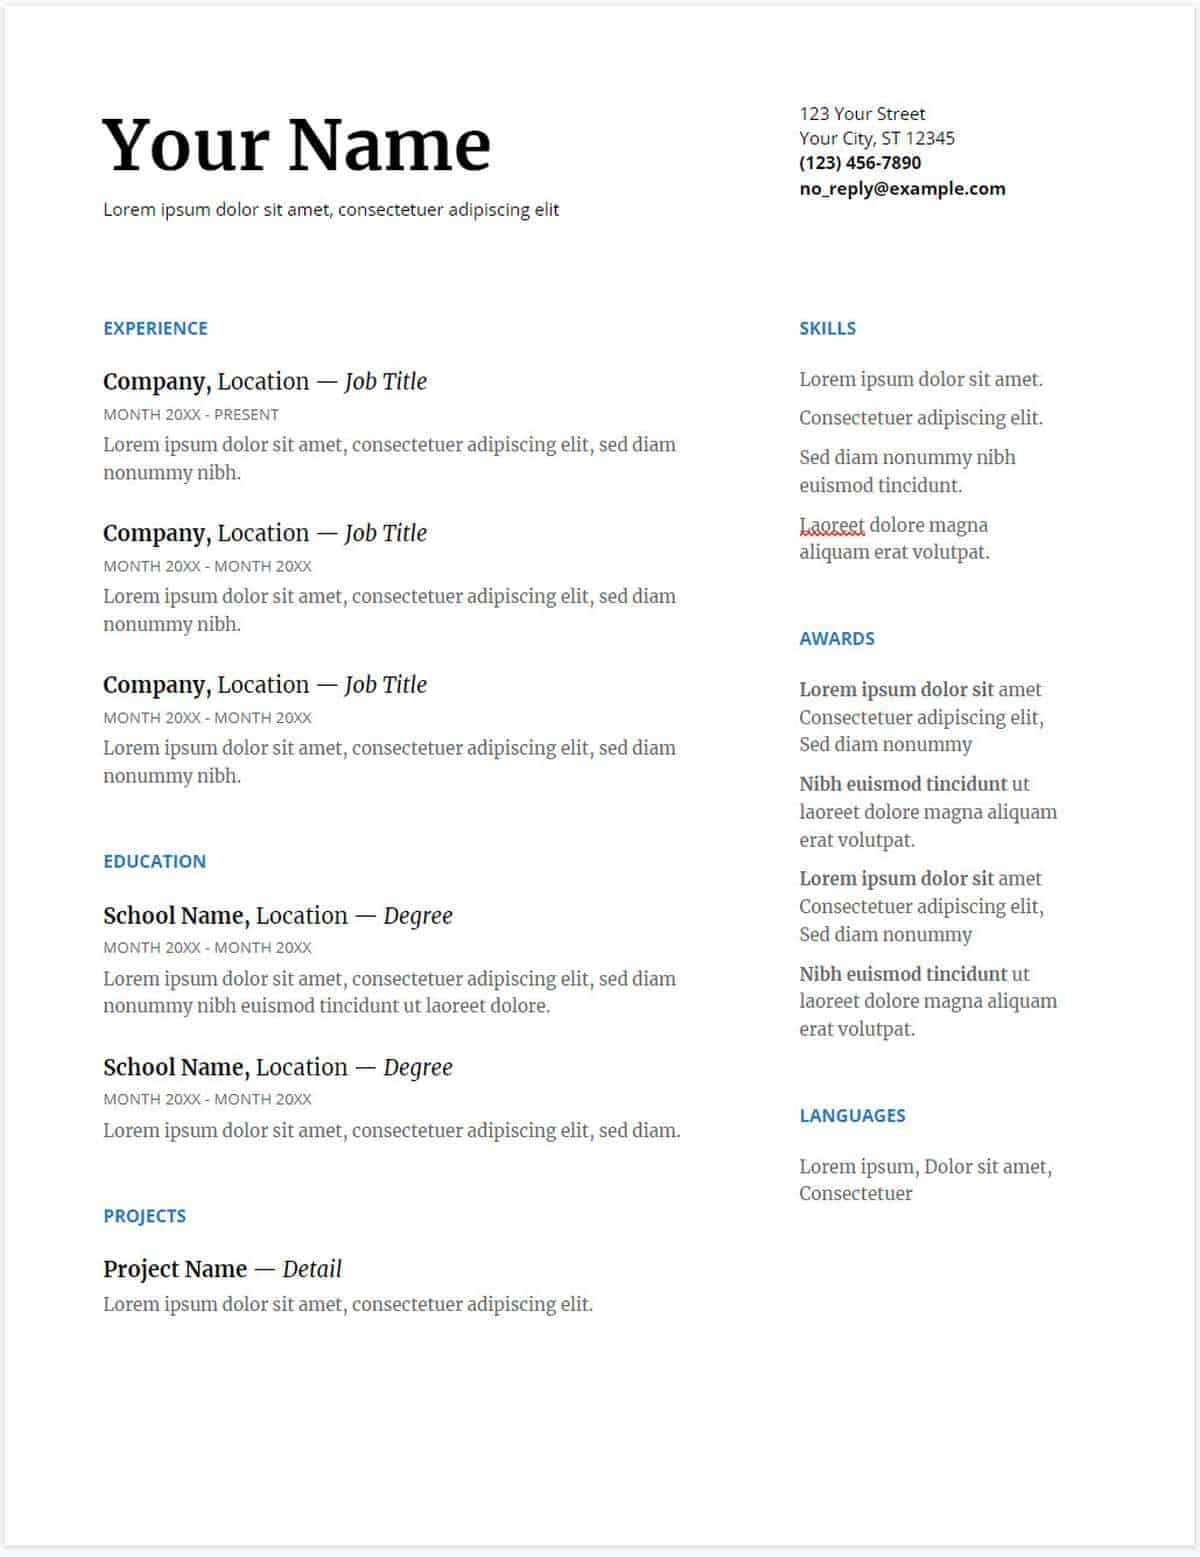 Free Resume Templates For Google Docs 30 Google Docs Resume Templates Downloadable Pdfs